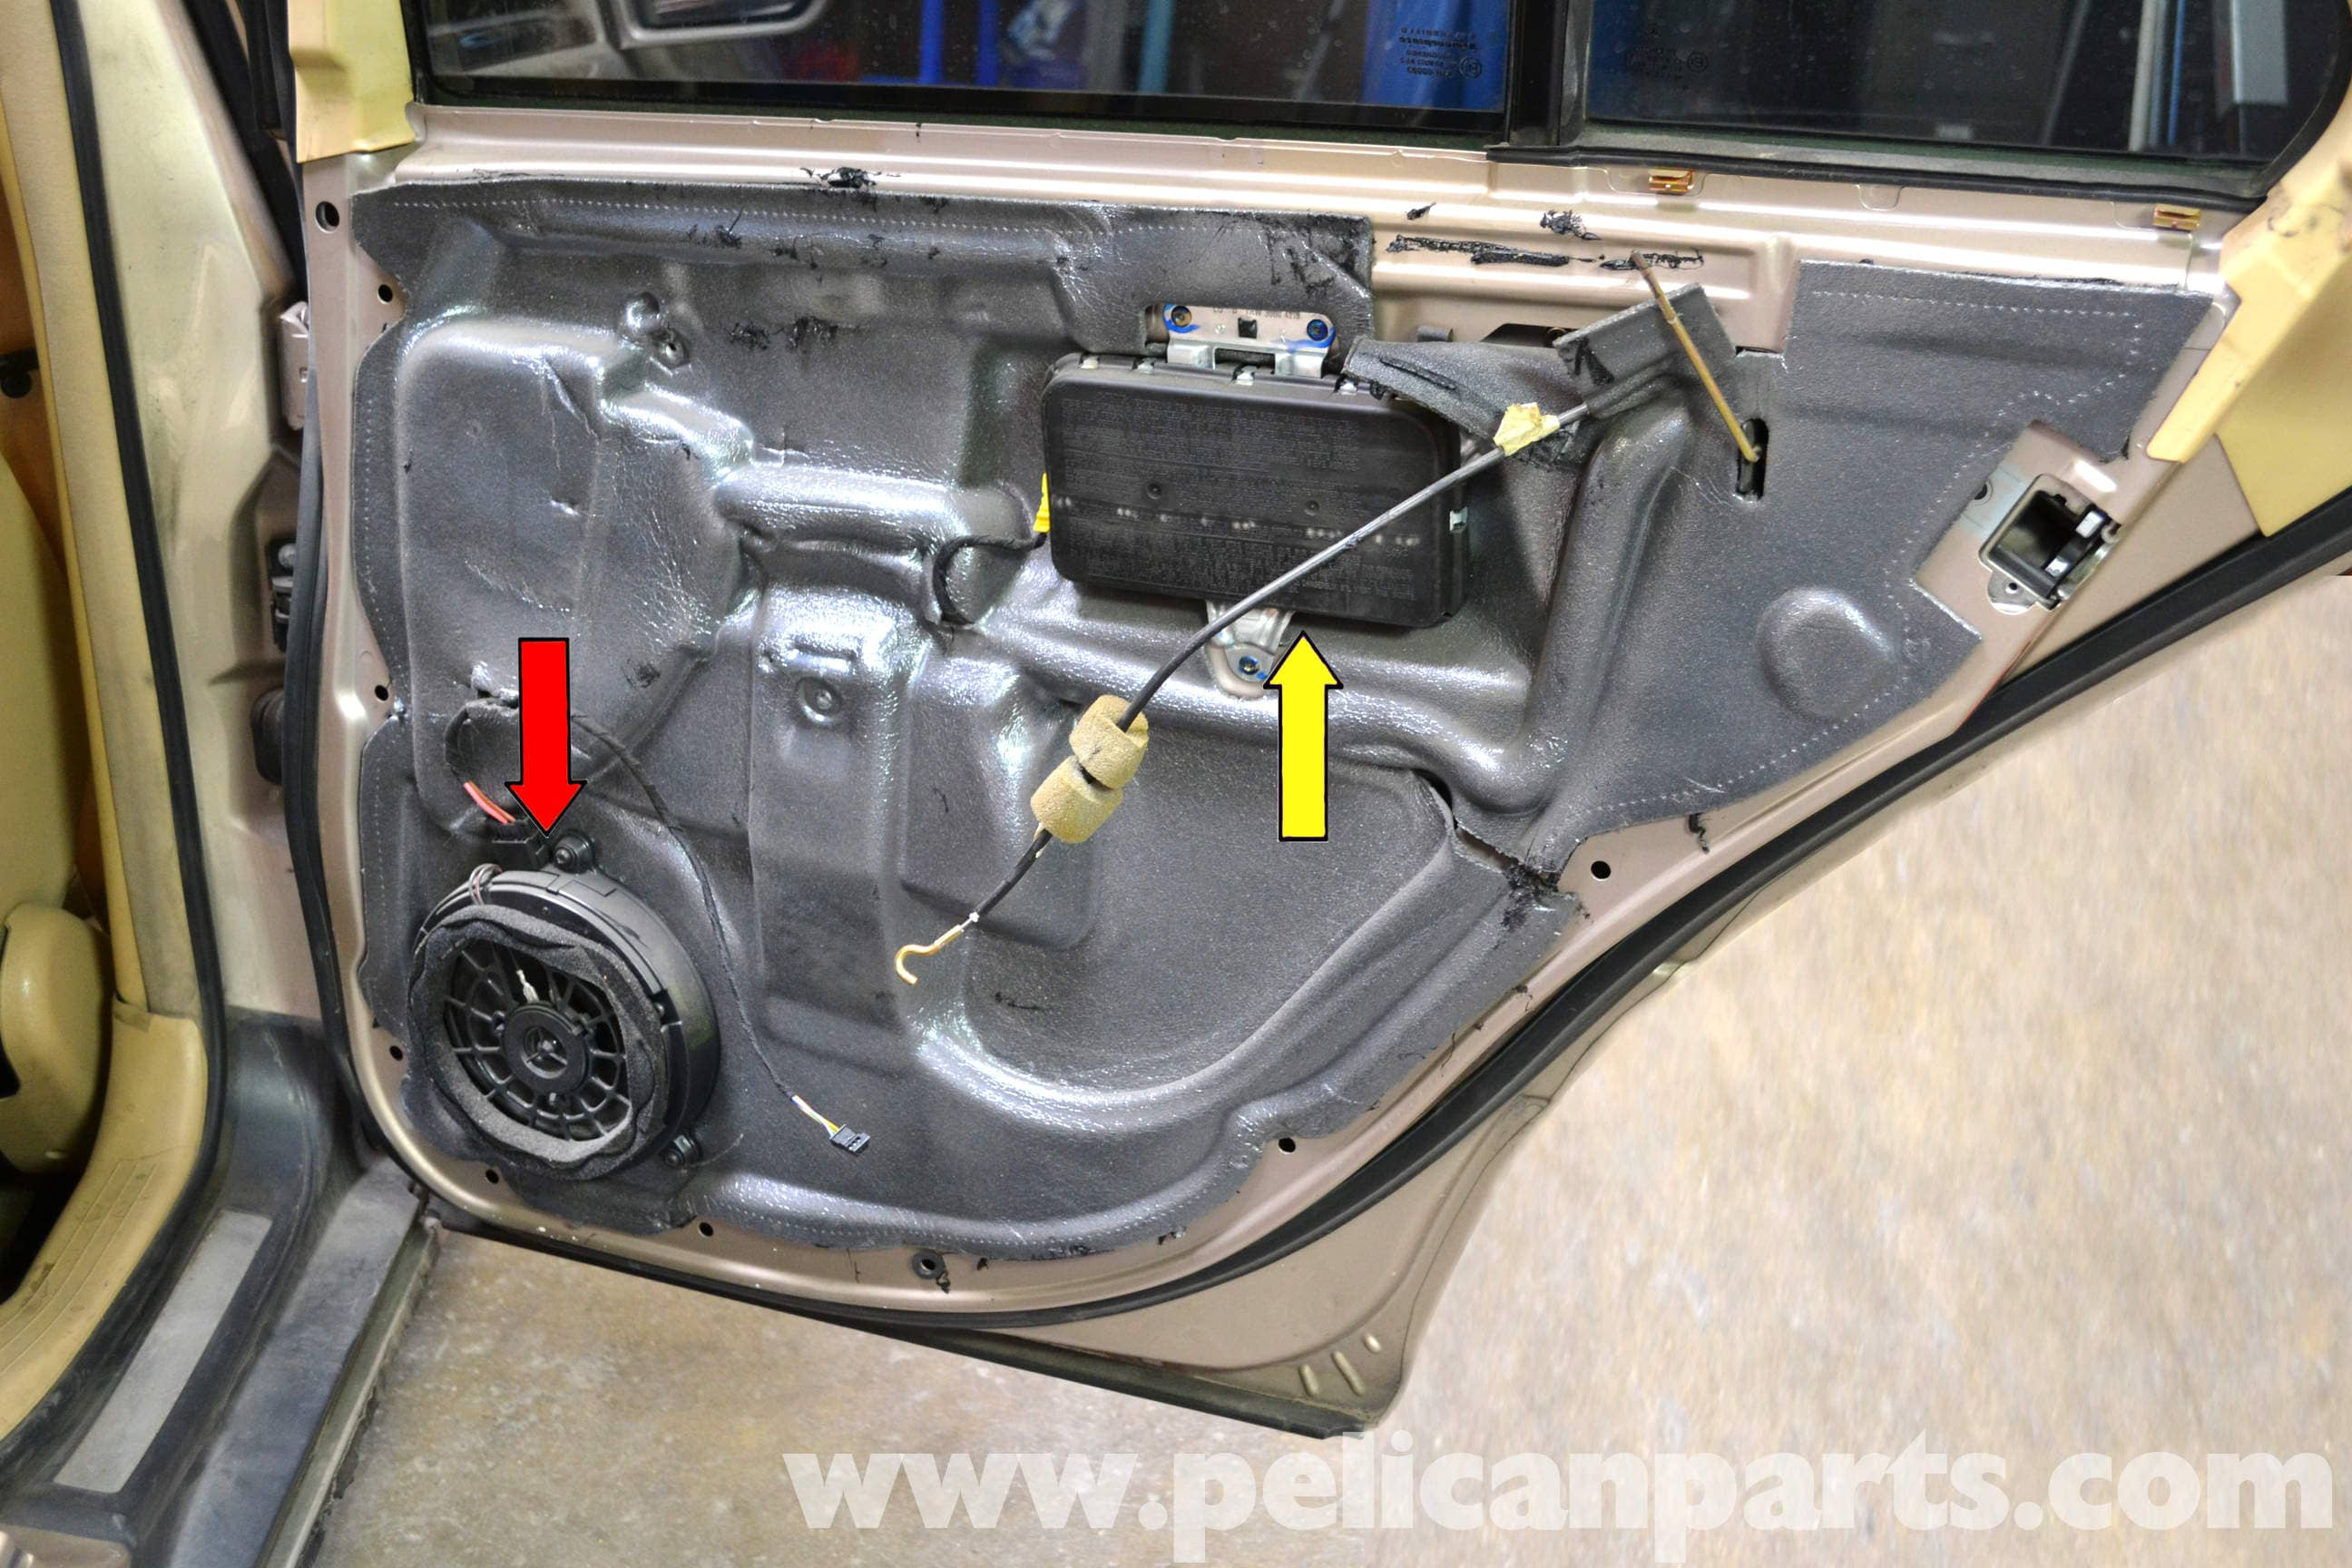 Large Image | Extra-Large Image & Mercedes-Benz W203 Rear Door Handle Removal - (2001-2007) C230 C280 ...